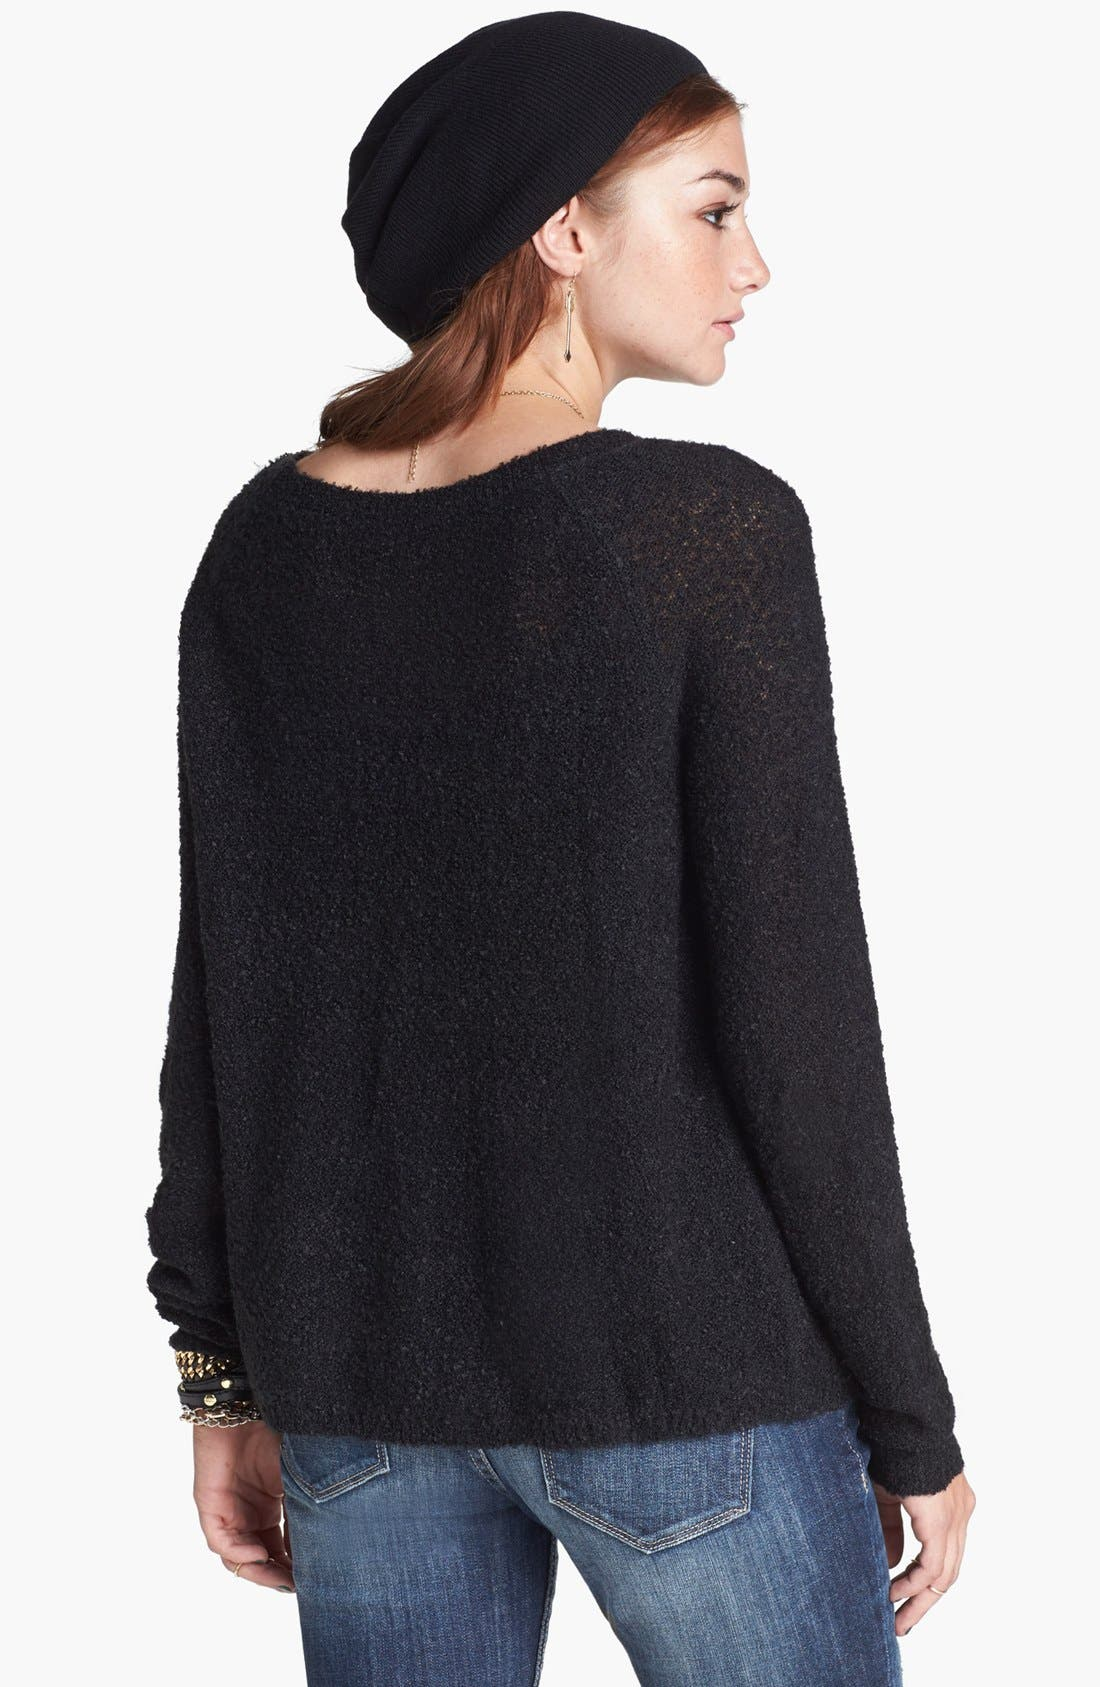 'Grunge' Textured Sweater,                             Alternate thumbnail 2, color,                             001